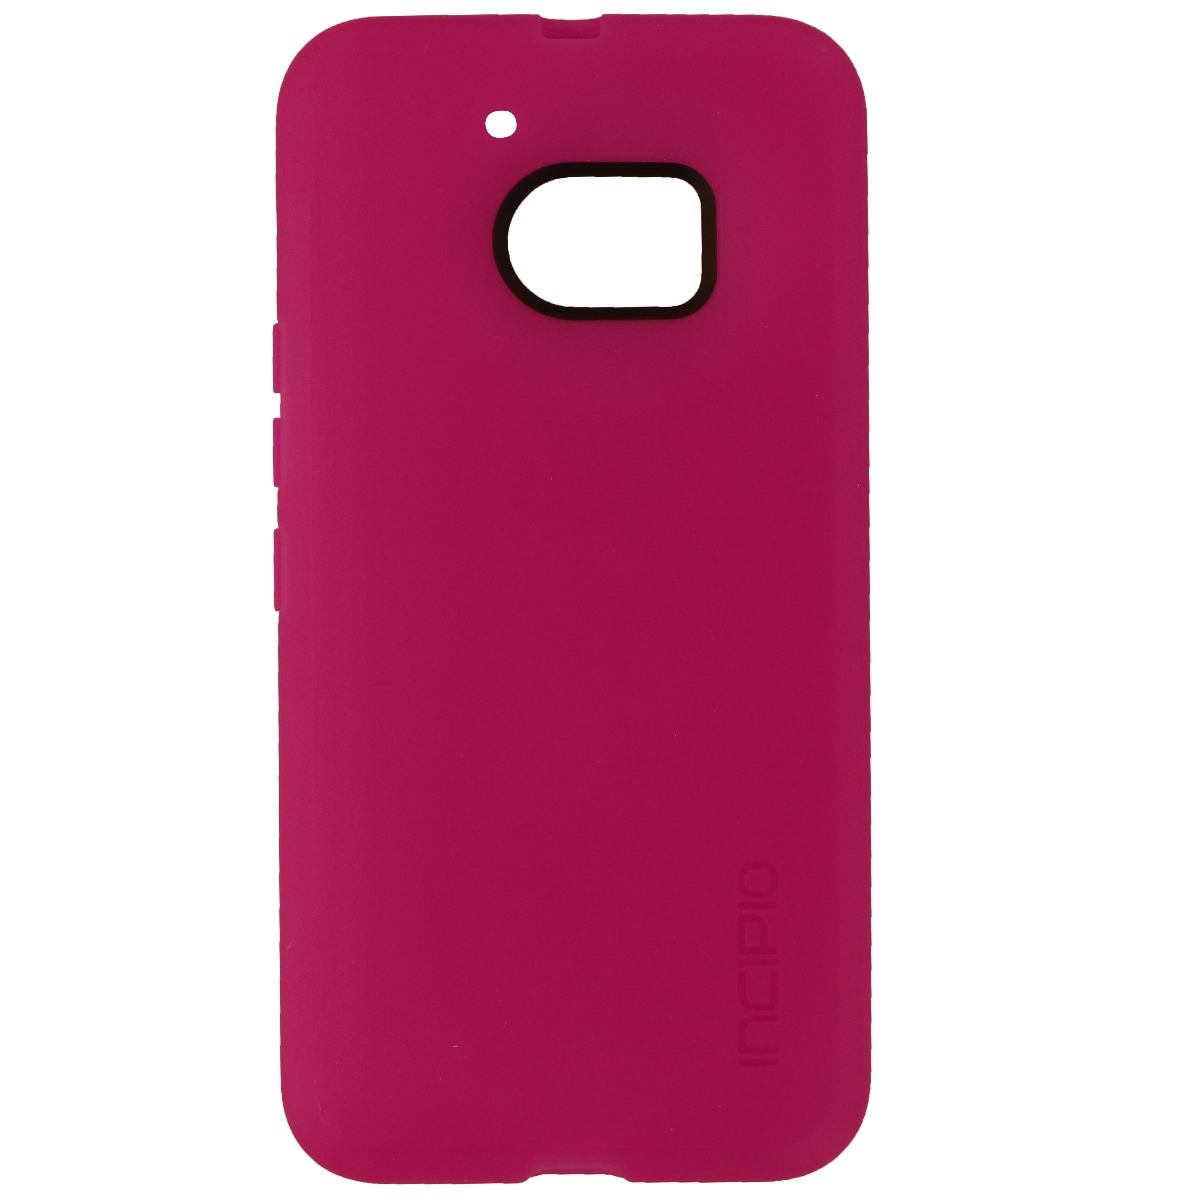 Incipio NGP Series Slim Flexible Gel Case Cover for HTC M10 Smartphone - Pink